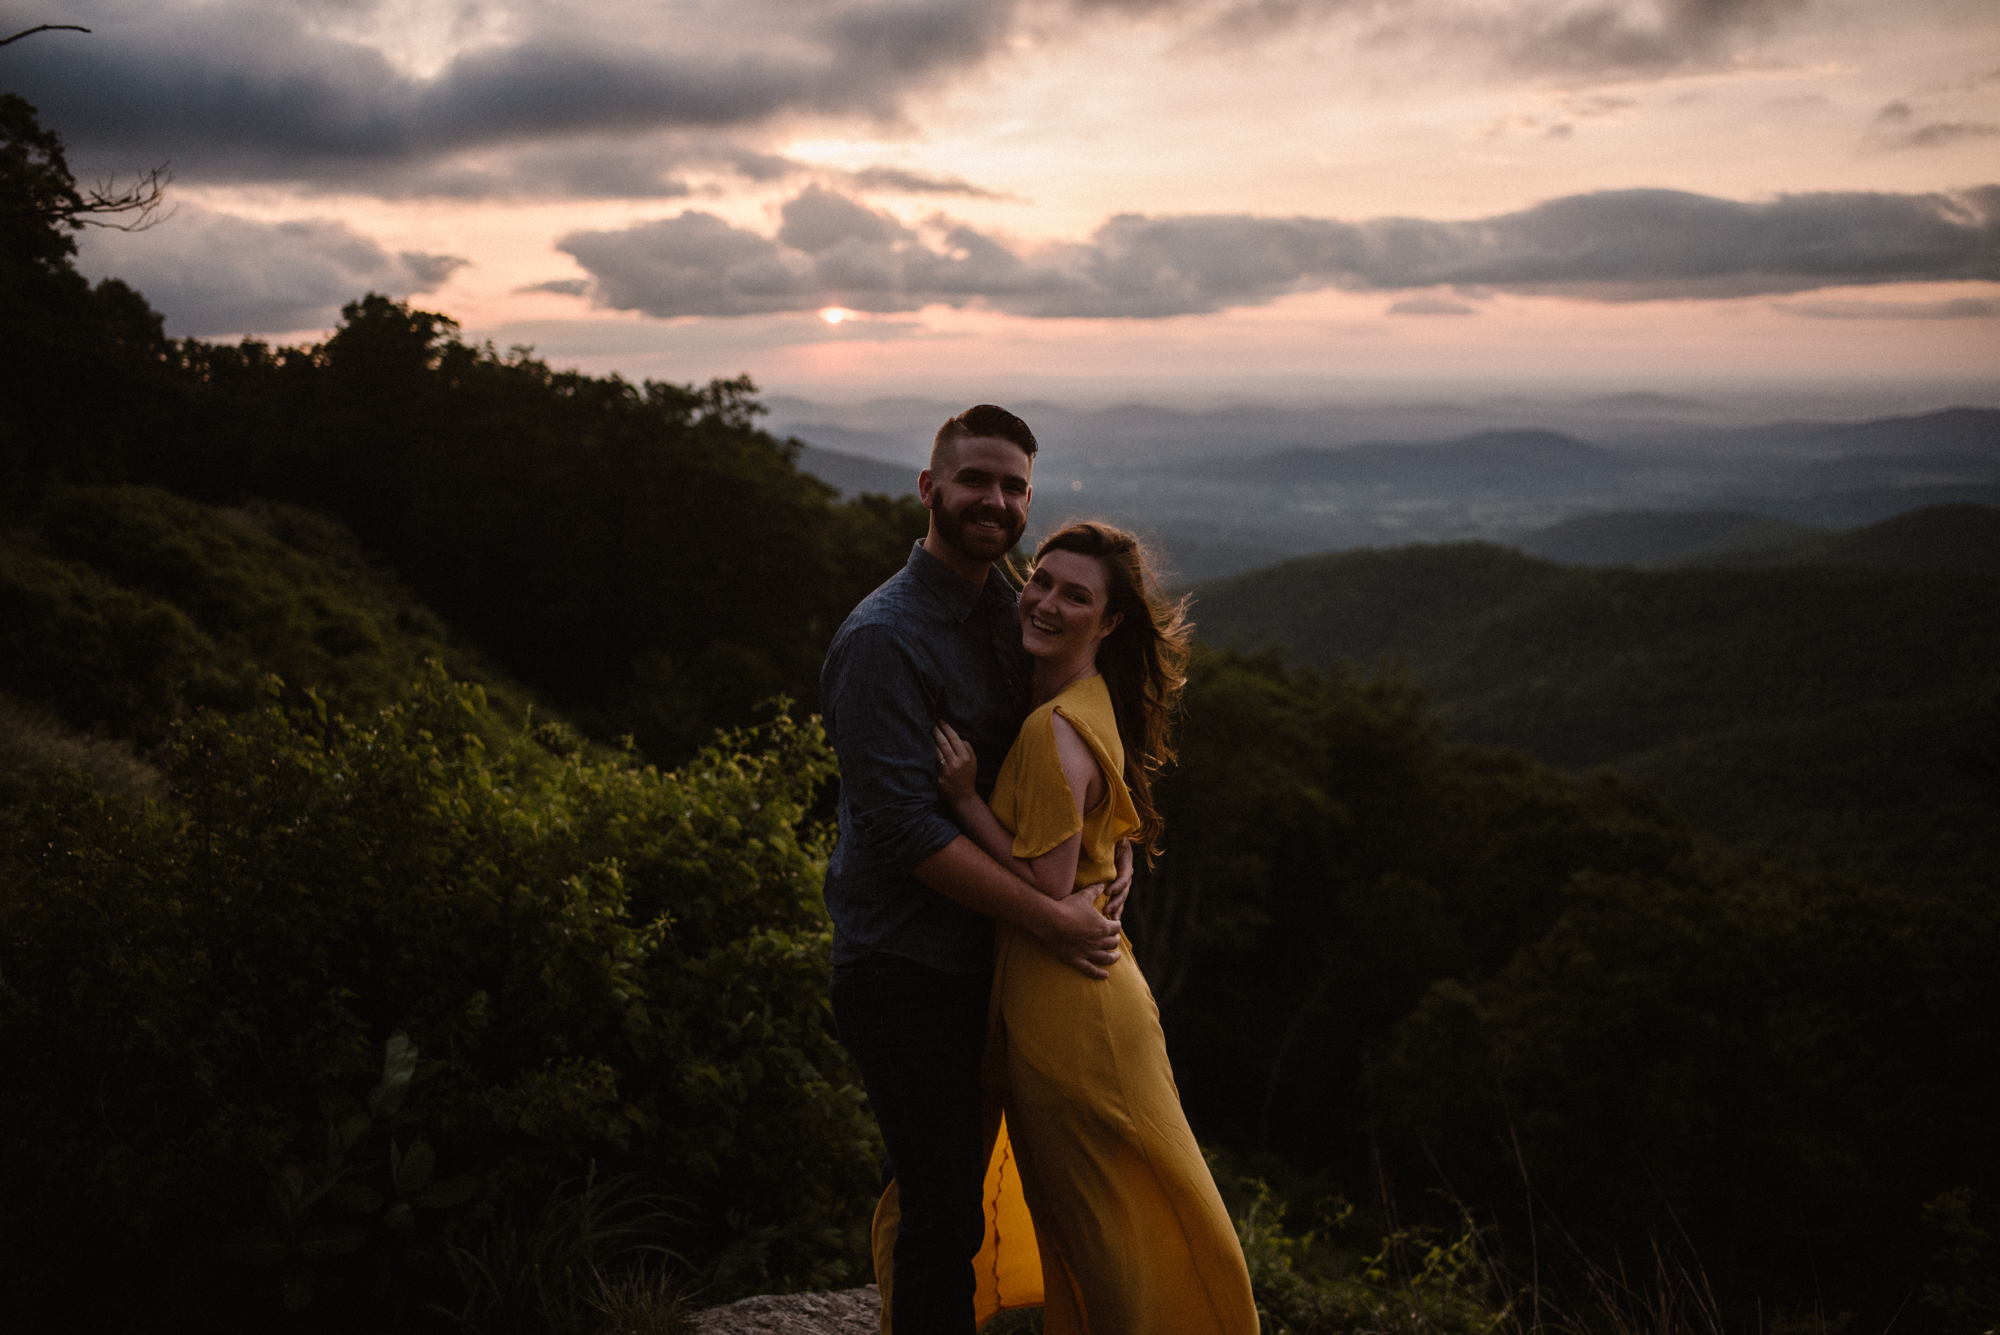 Camryn and Larry Sunrise Engagement Session in Shenandoah National Park - Things to Do in Luray Virginia - Adventurous Couple Photo Shoot White Sails Creative_1.jpg